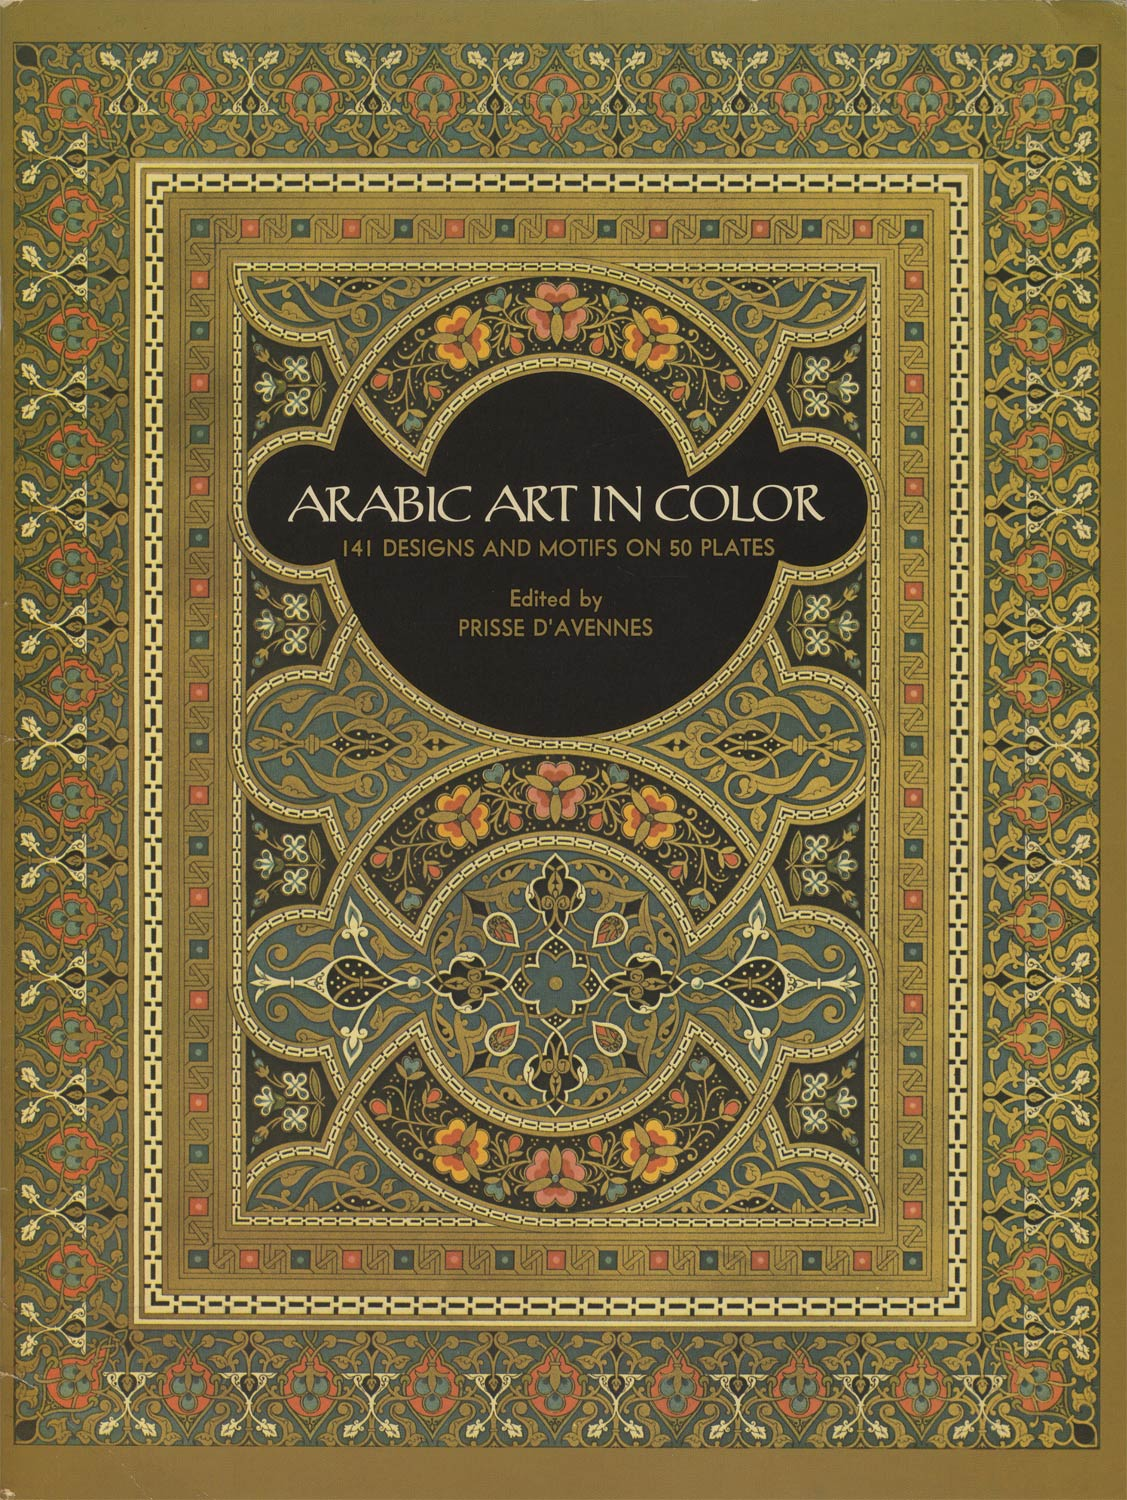 Arabic Art in Color  141 Designs and Motifs on 50 Plates